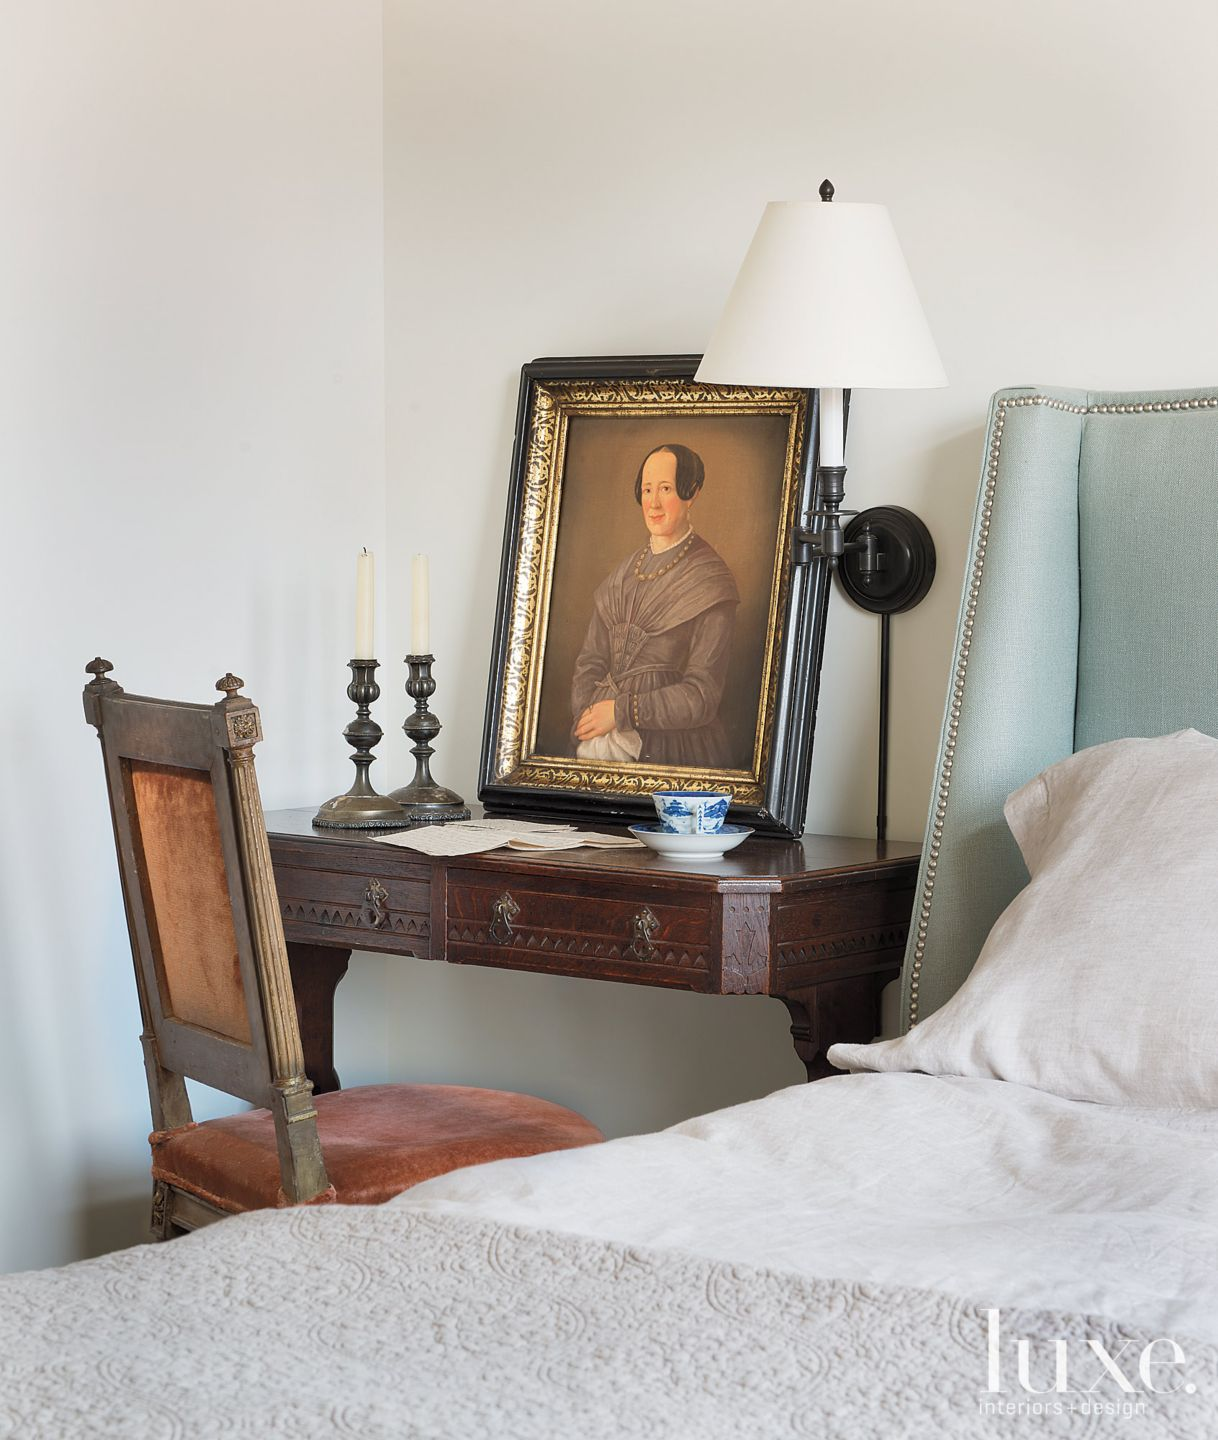 Transitional Neutral Bedroom with 19th Century European Pieces